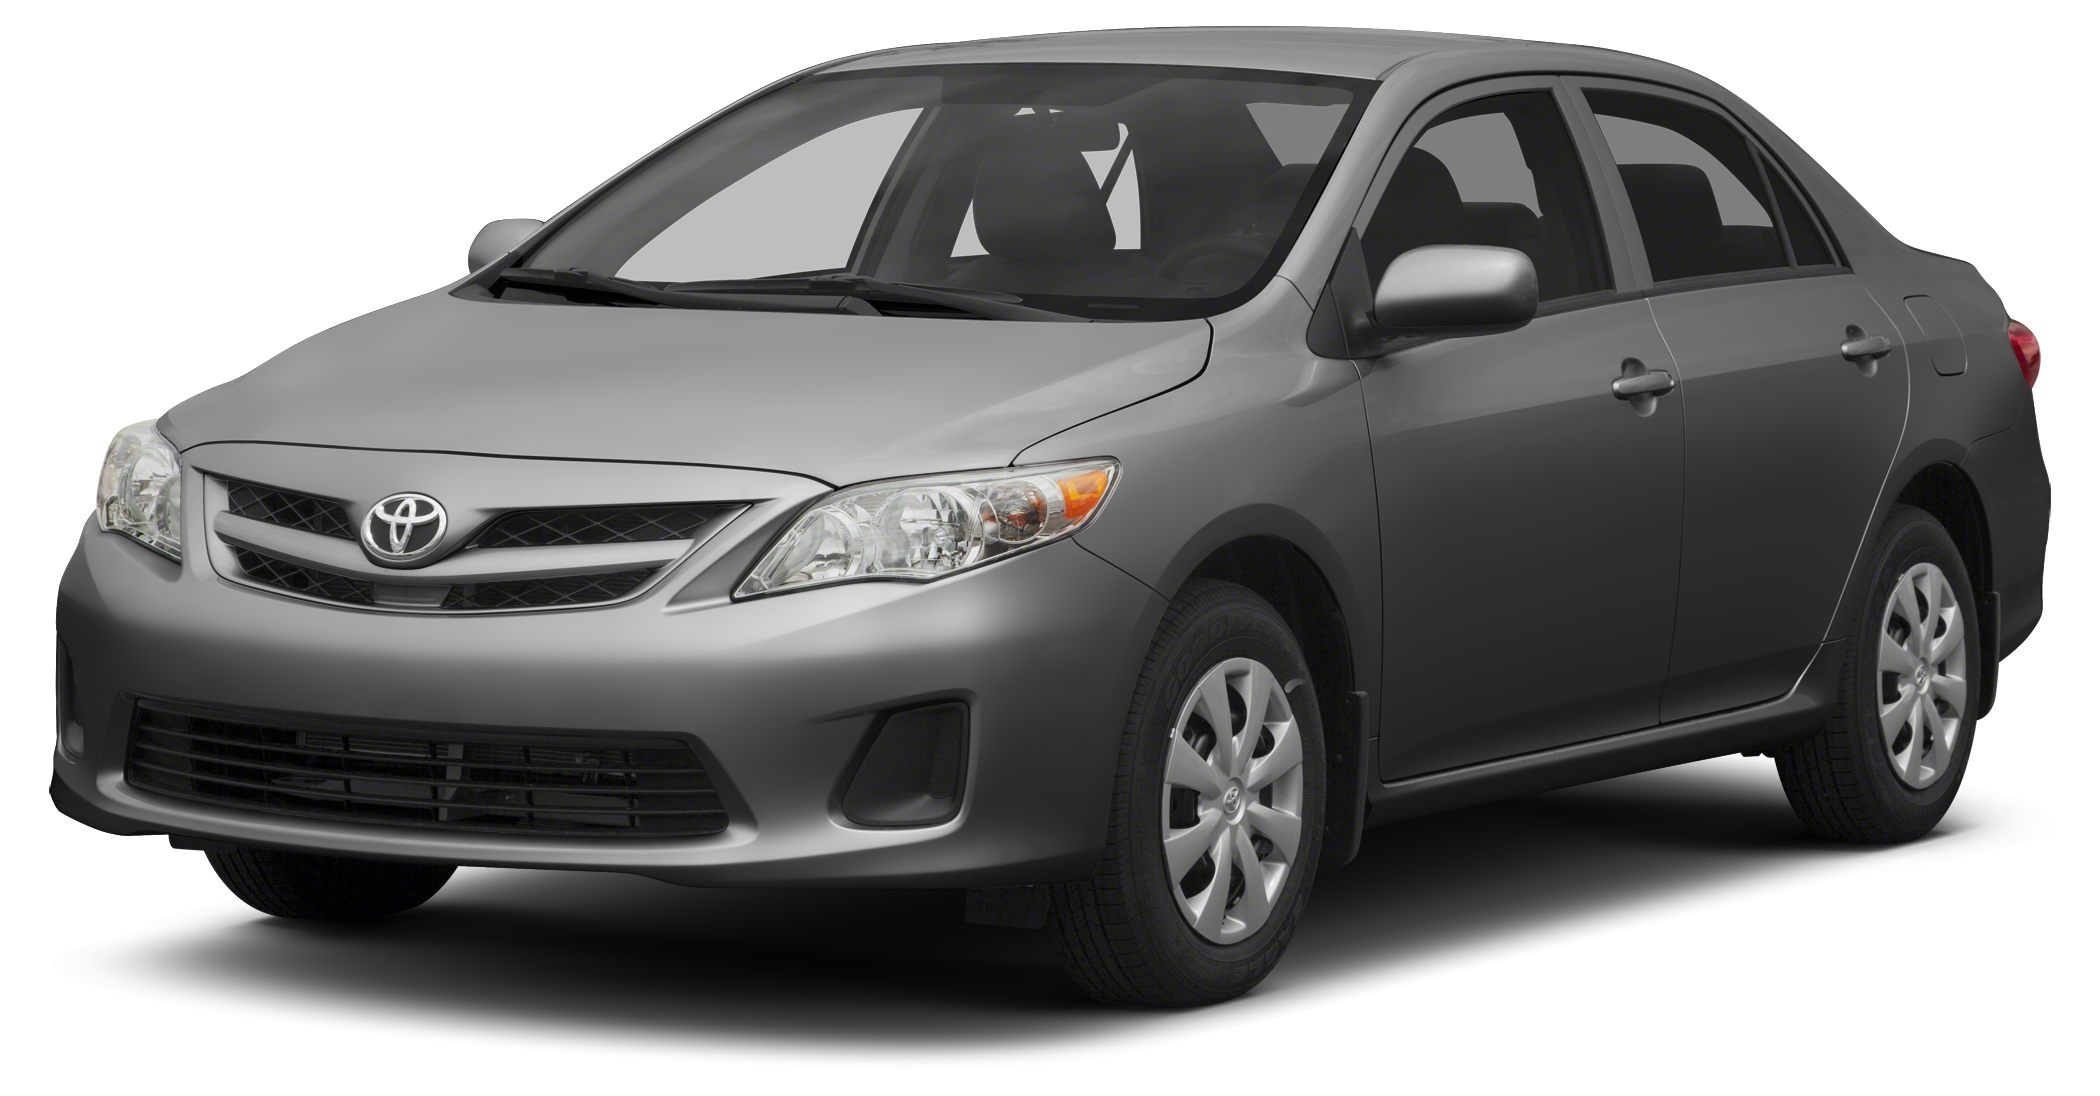 2013 Toyota Corolla LE CARFAX 1-Owner Toyota Certified LE trim FUEL EFFICIENT 34 MPG Hwy26 MPG